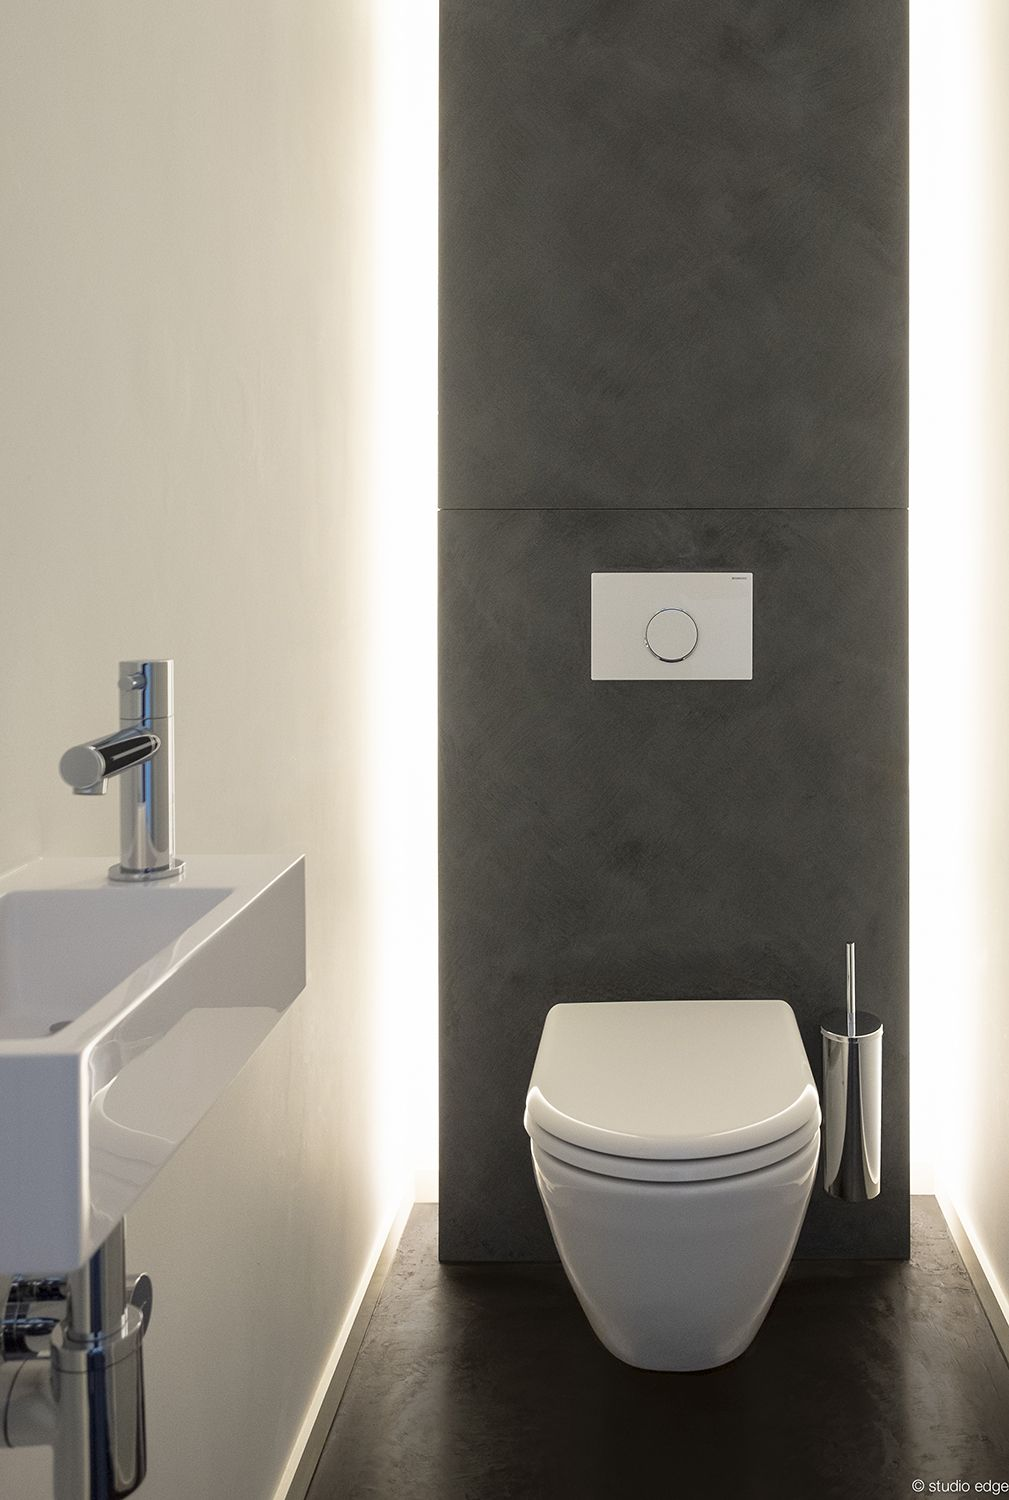 indirect lighting design. studio edge u2022 interior design of a toilet with indirect lighting www